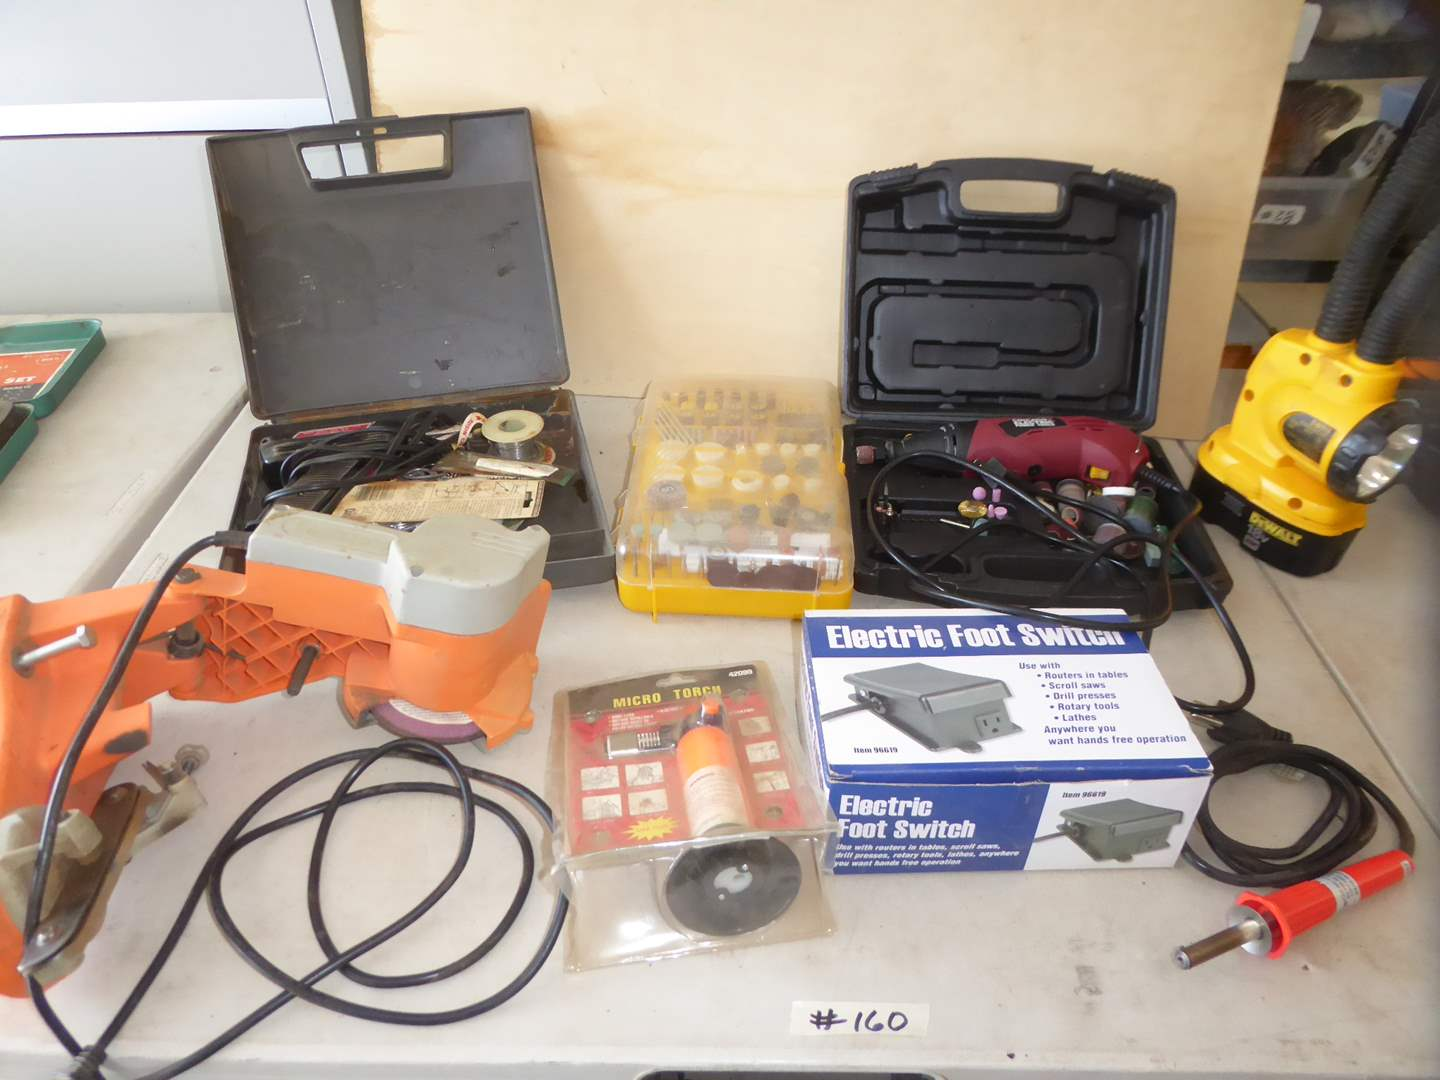 Lot # 160 - Rotary Tool W/Bits, Soldering Gun, Micro Torch & Electric Foot Switch (main image)